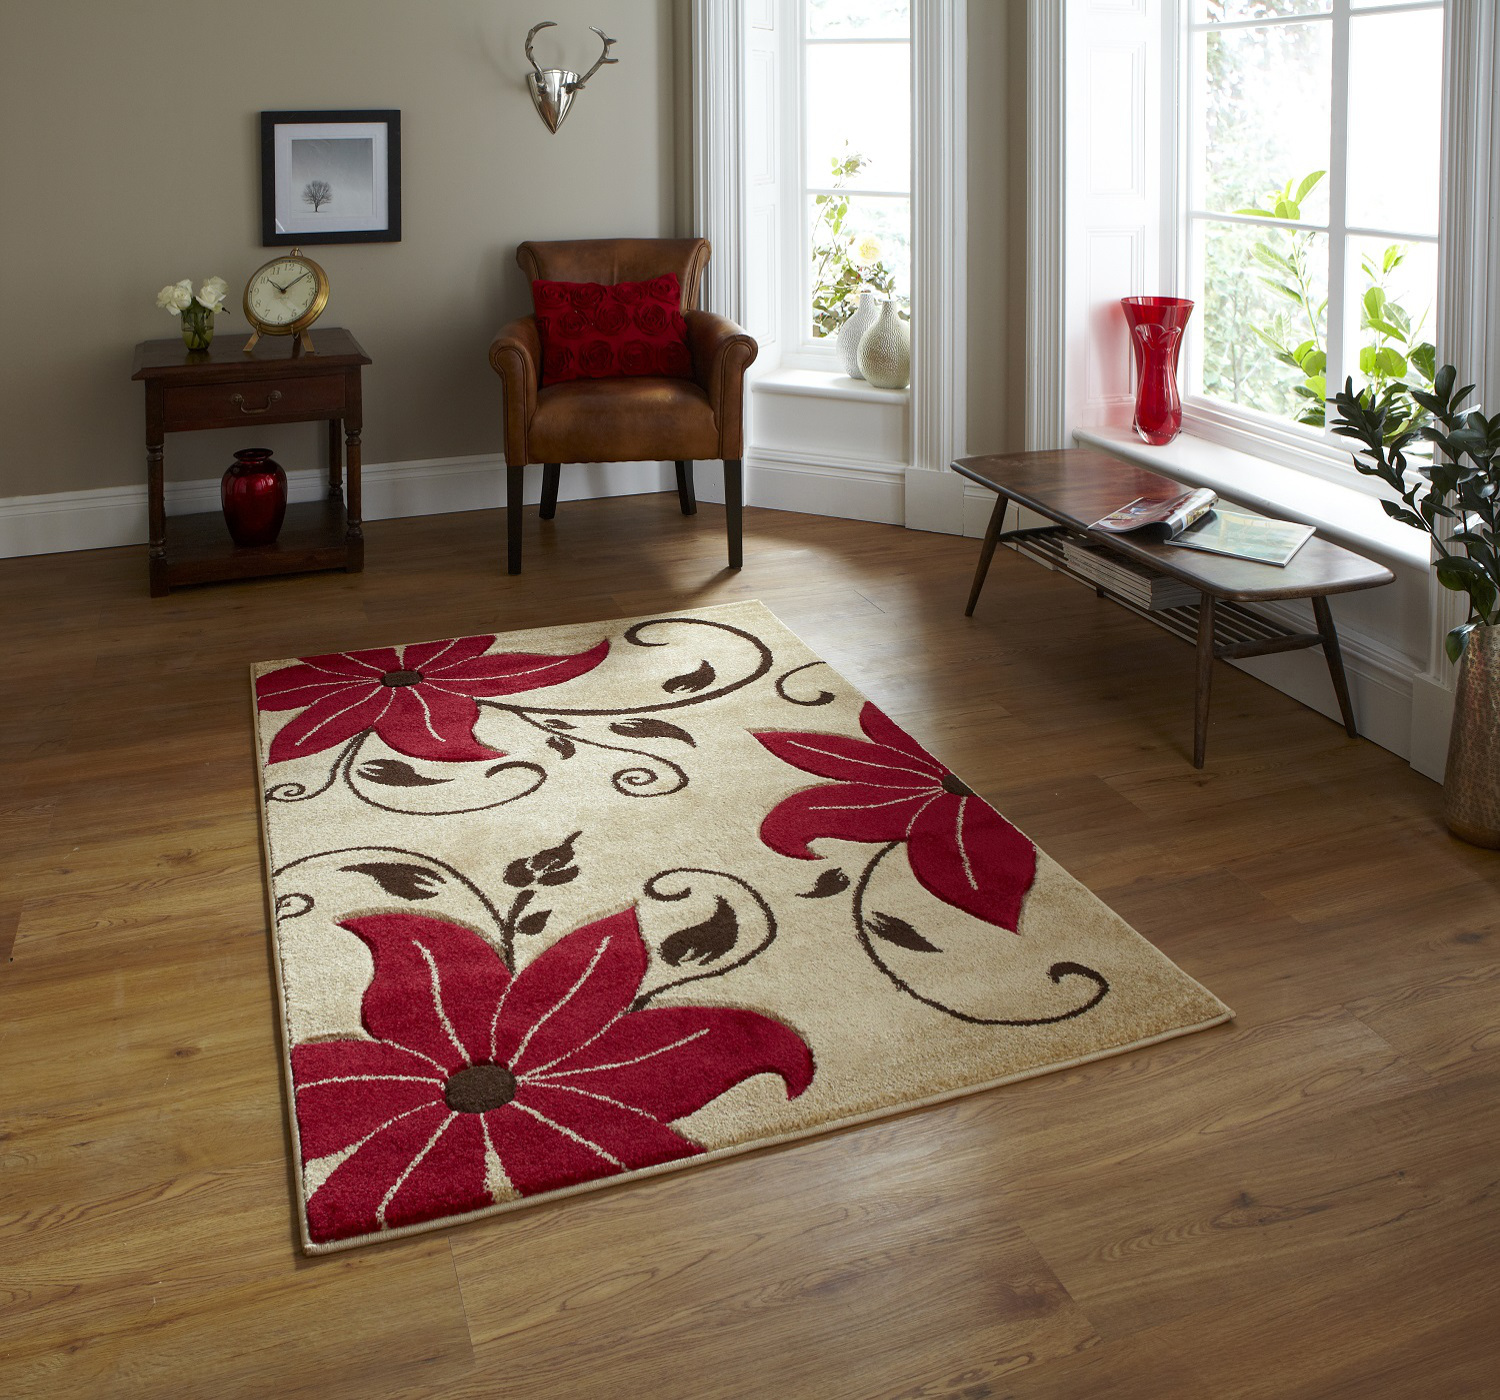 Vintage Effect Rug: Hand Carved Effect Floral Design Rug Verona Large Floor